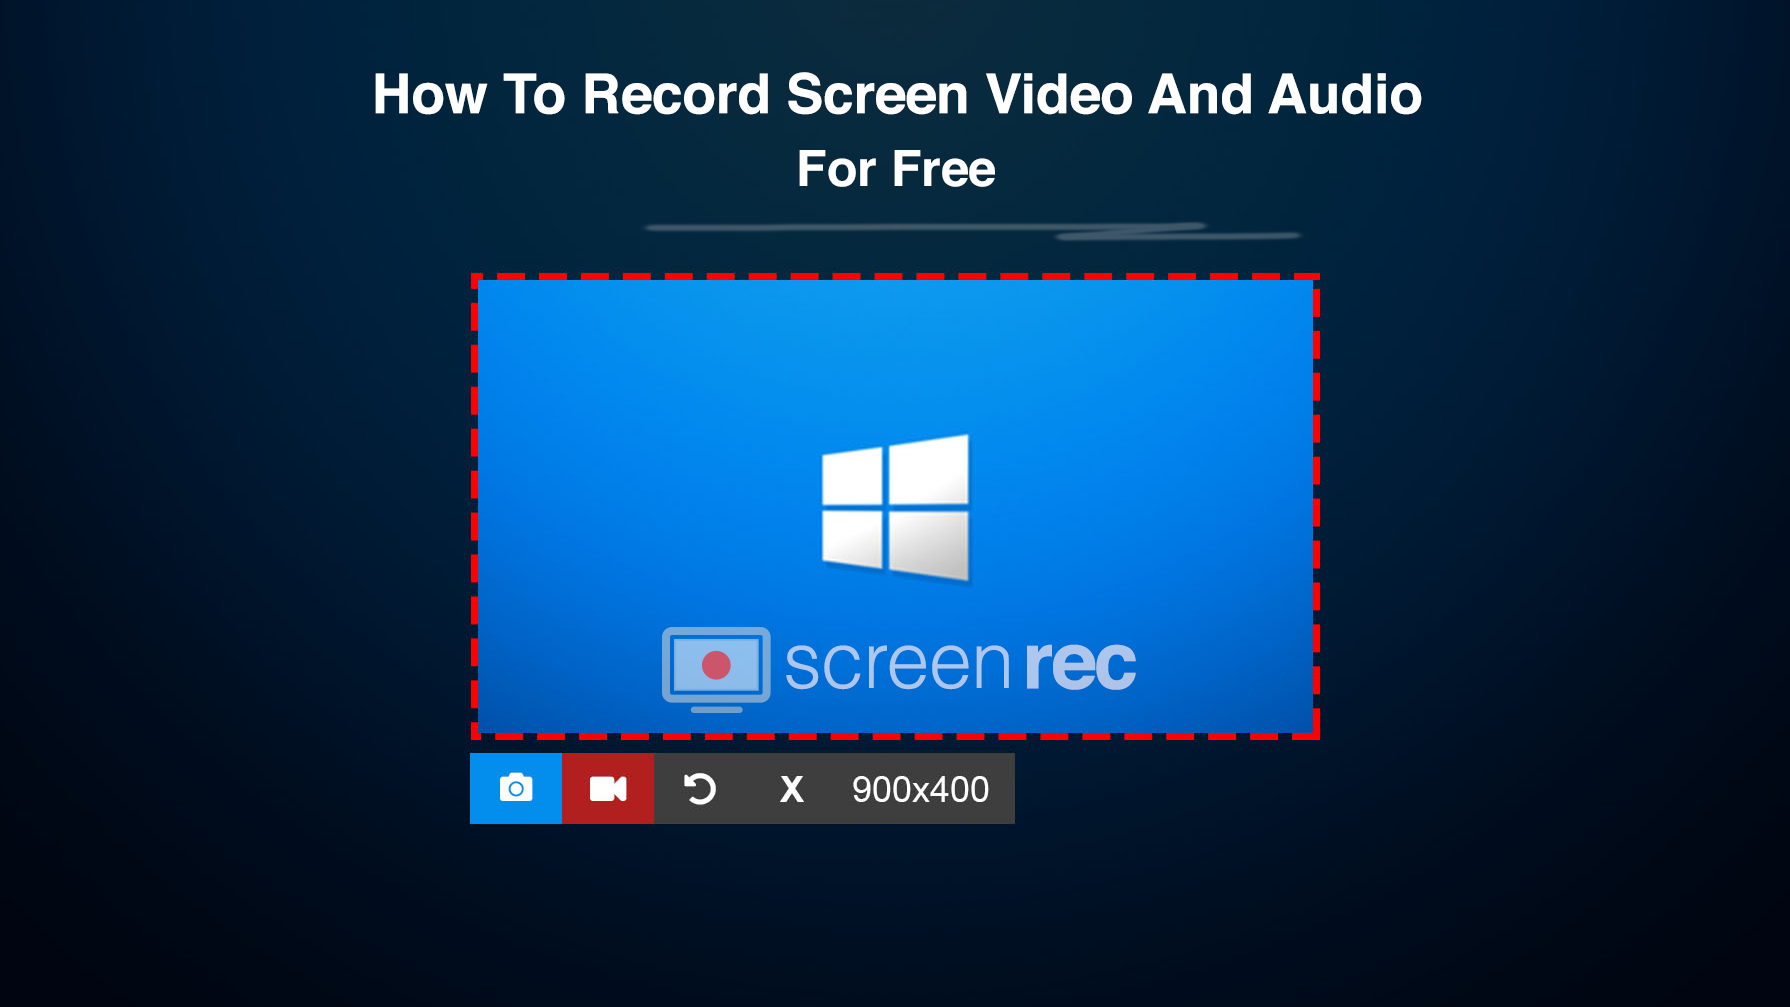 download screen recorder free for windows 10